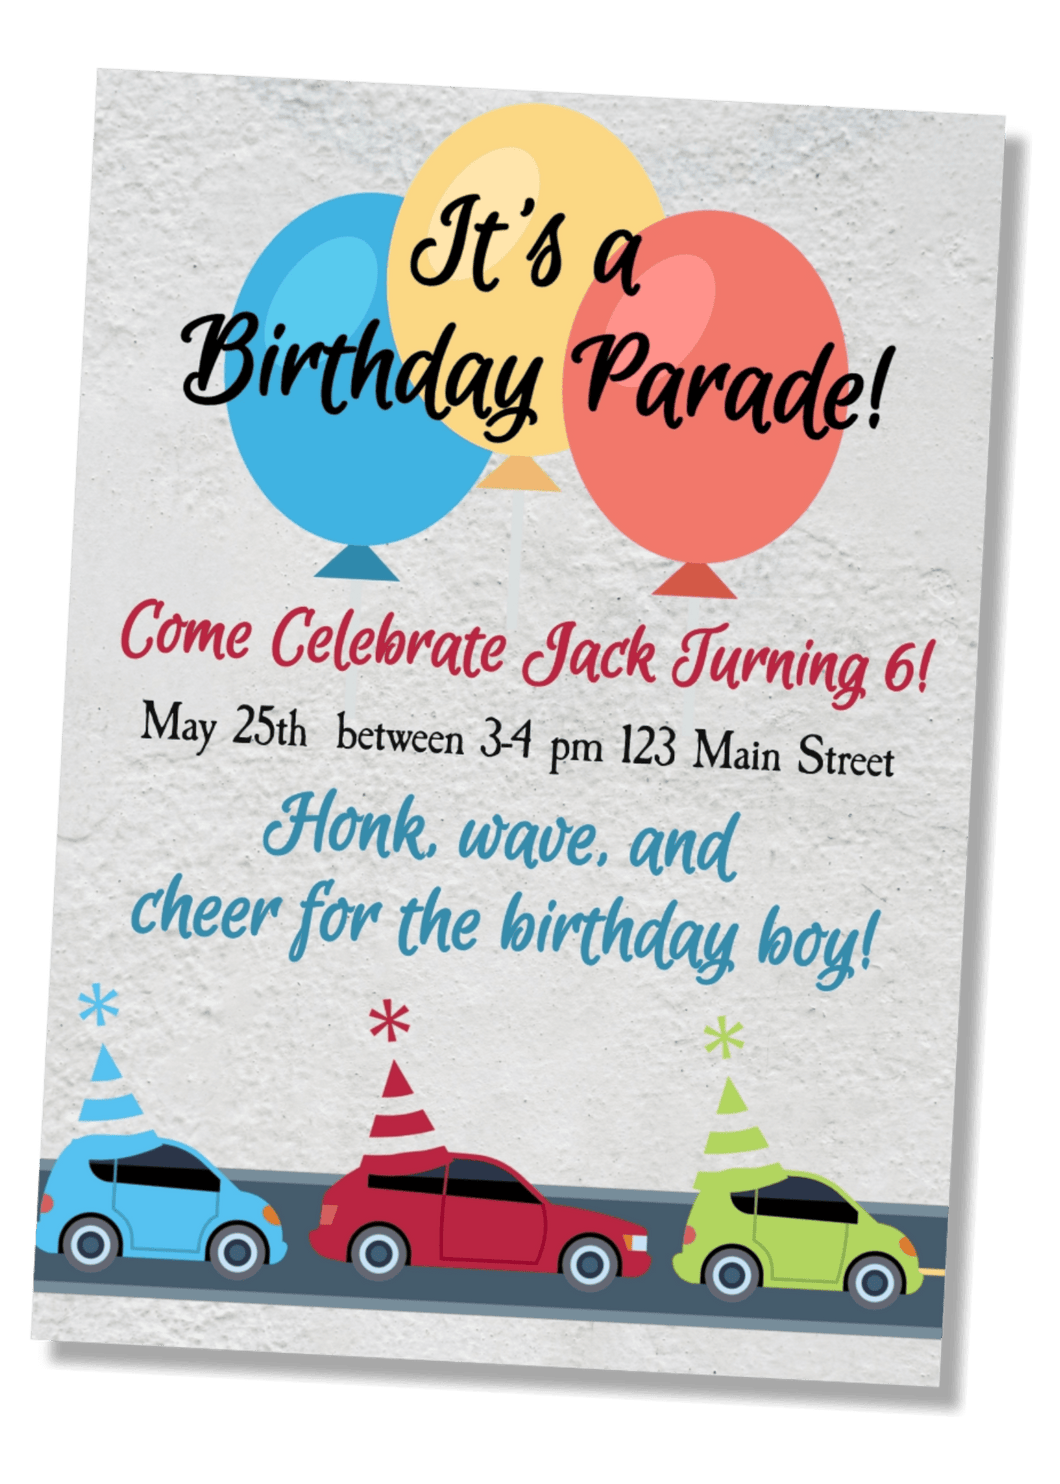 Car Parade Birthday Invitation - Sunny Jar Designs